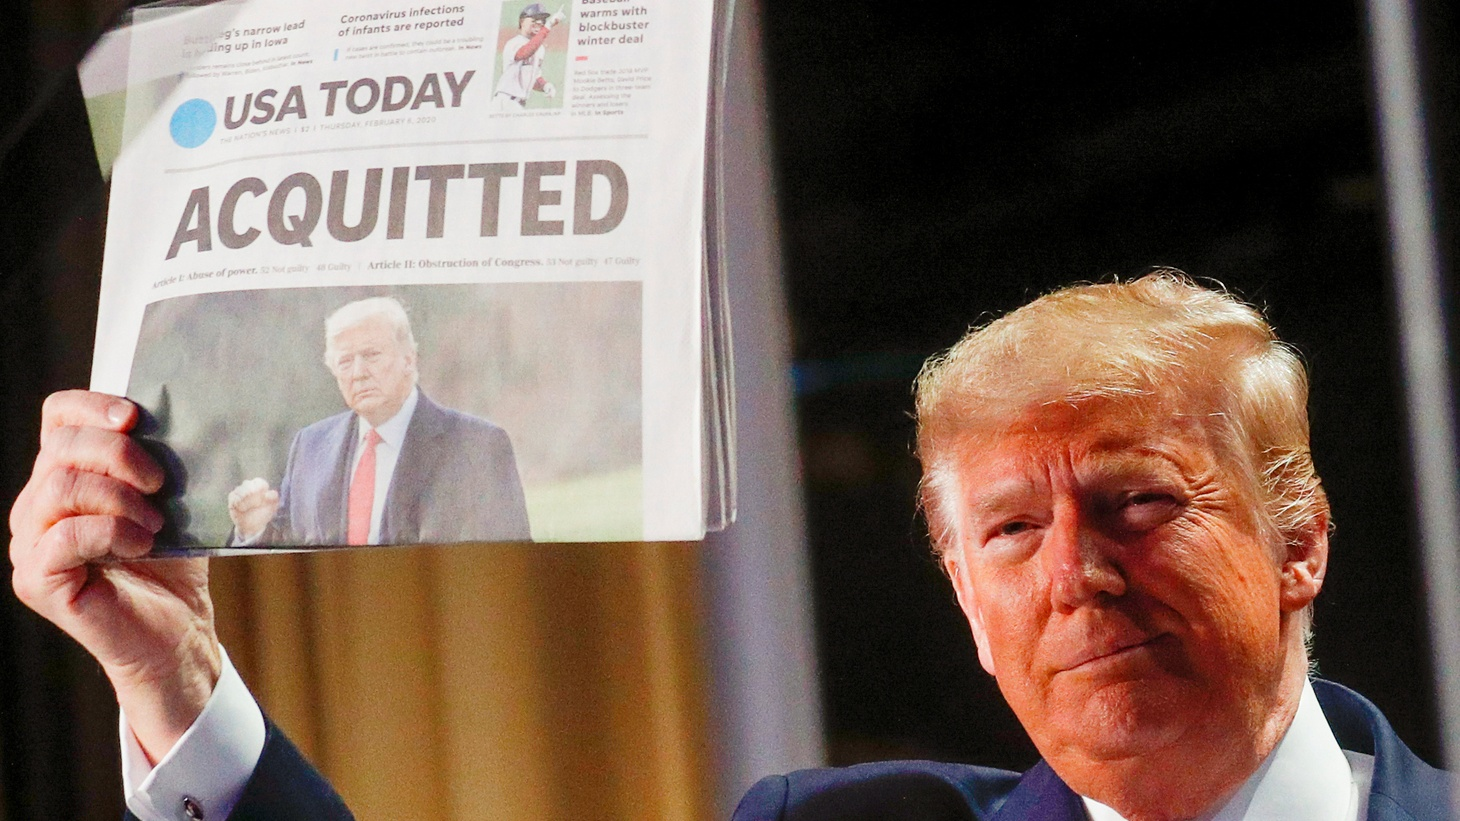 U.S. President Donald Trump holds up a copy of USA Today's front page showing news of his acquitttal in his Senate impeachment trial, as he arrives to address the National Prayer Breakfast in Washington, U.S., February 6, 2020.